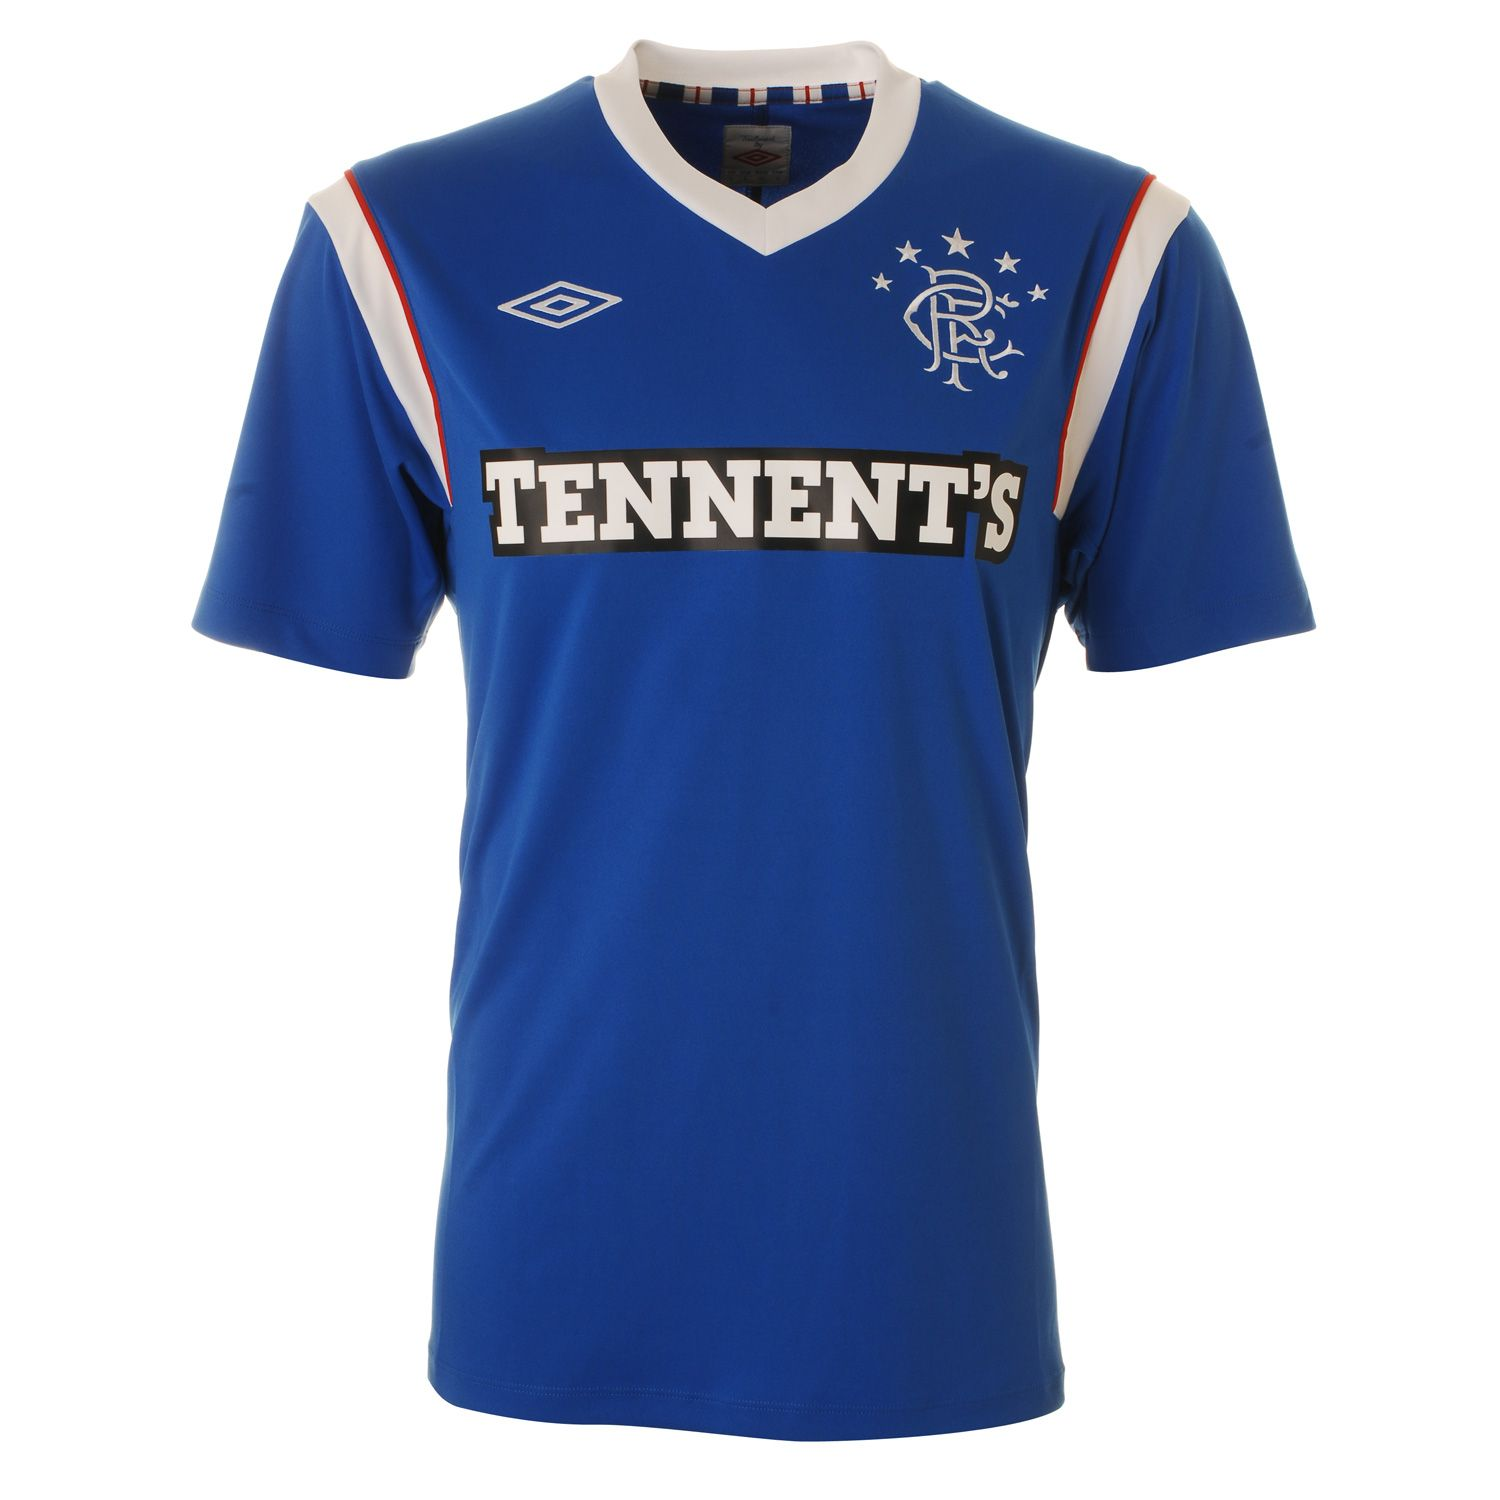 Rangers-Home-Mens-Football-Shirt-2011-12-SS